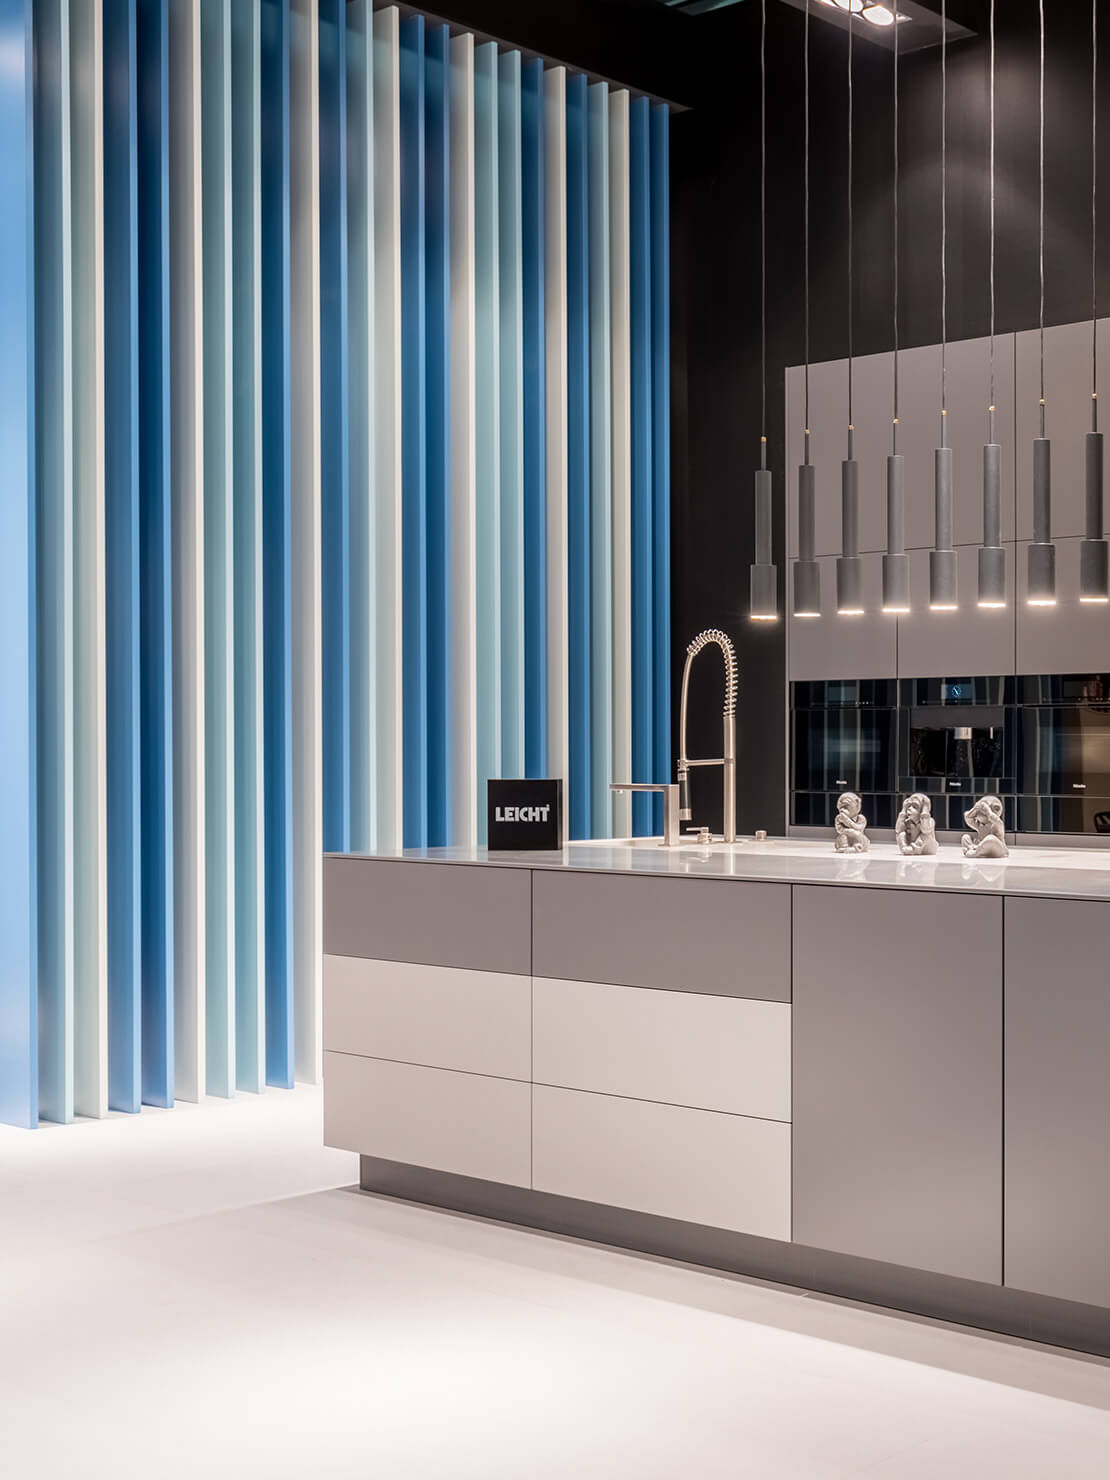 Leicht Küchen Facebook Leicht Le Corbusier Design Kitchens High Quality Kitchens